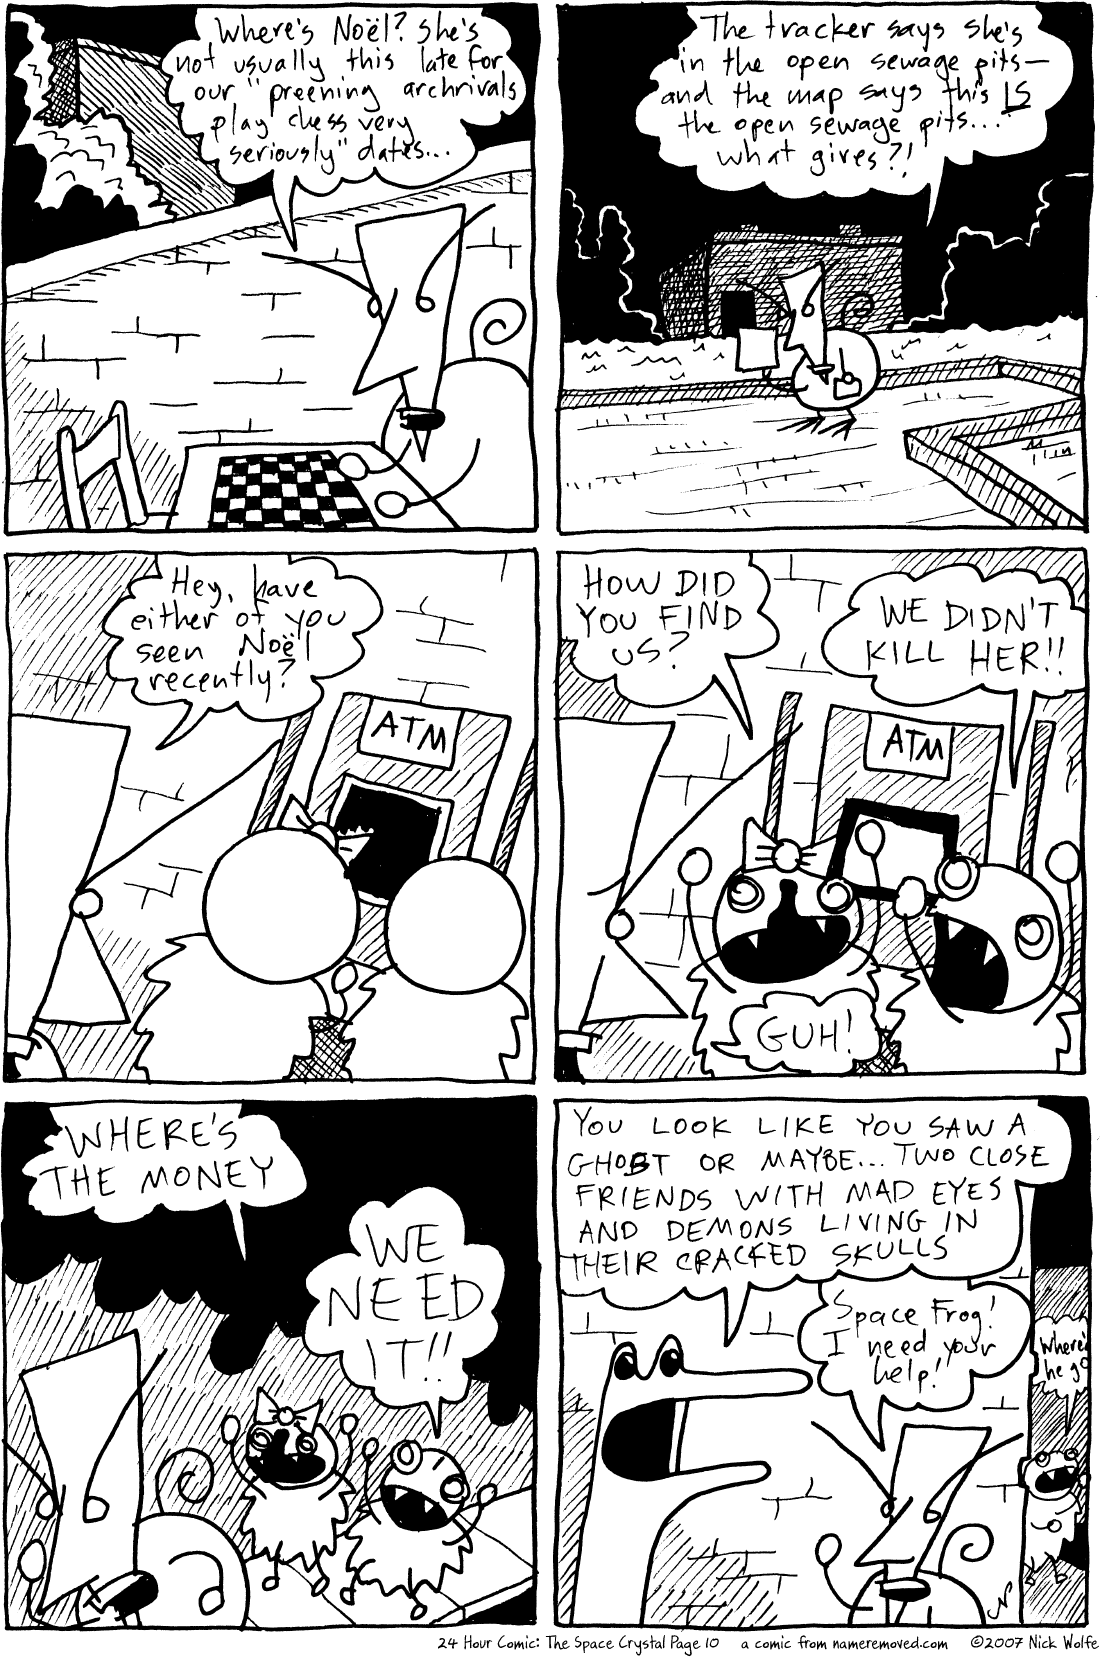 24 Hour Comic: The Space Crystal Page 10